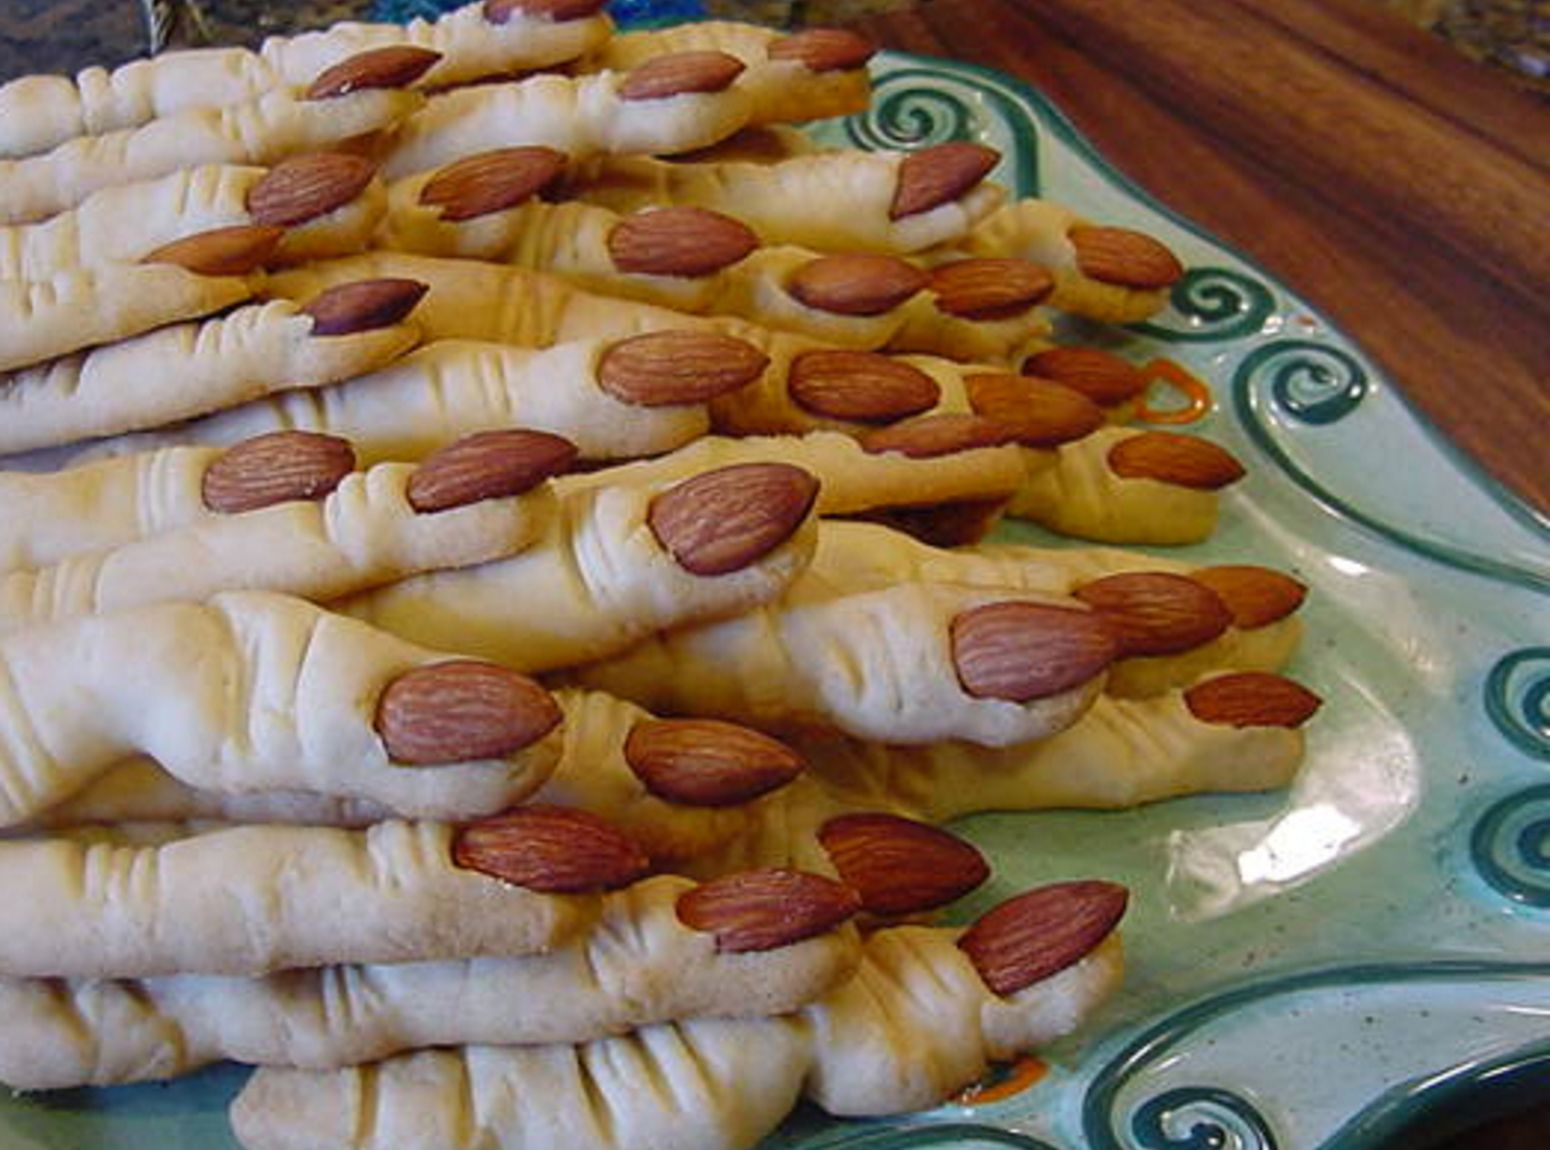 Halloween Witch Finger Cookies.Bonnie S Spooky Witches Fingers Recipe Halloween Food For Party Witch Finger Cookies Halloween Snacks